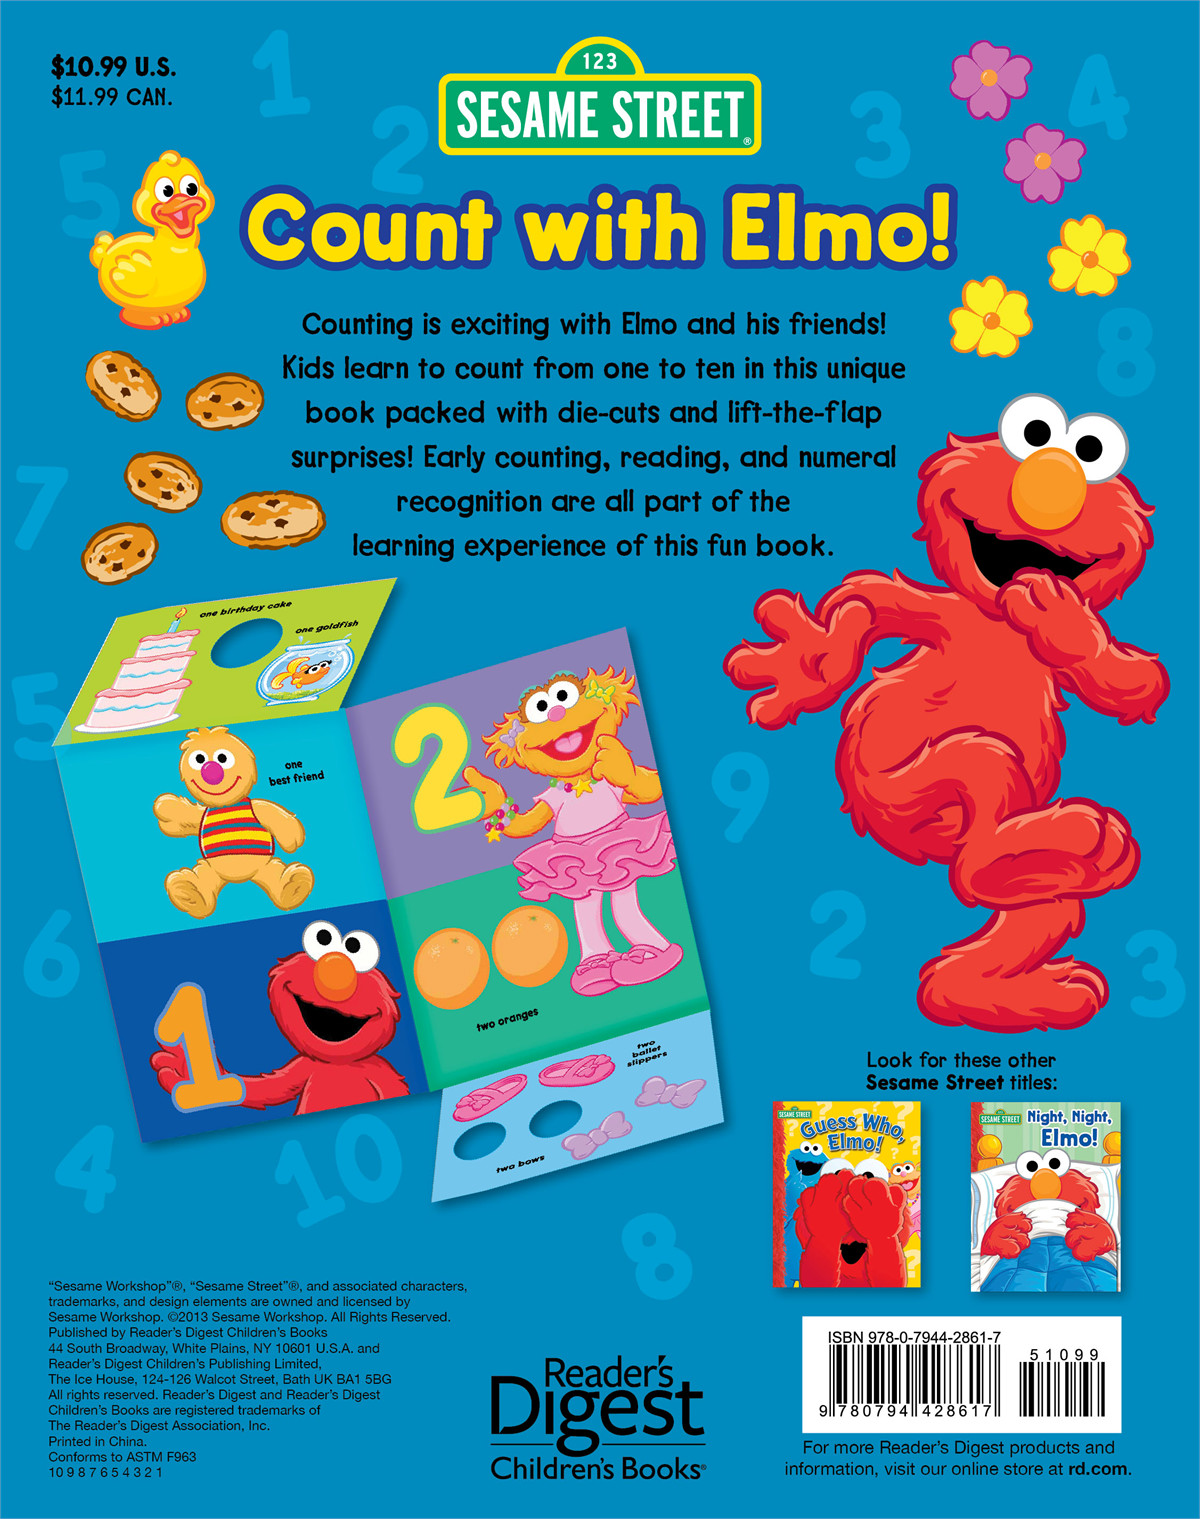 Sesame Street Count on Elmo Sesame-street-count-with